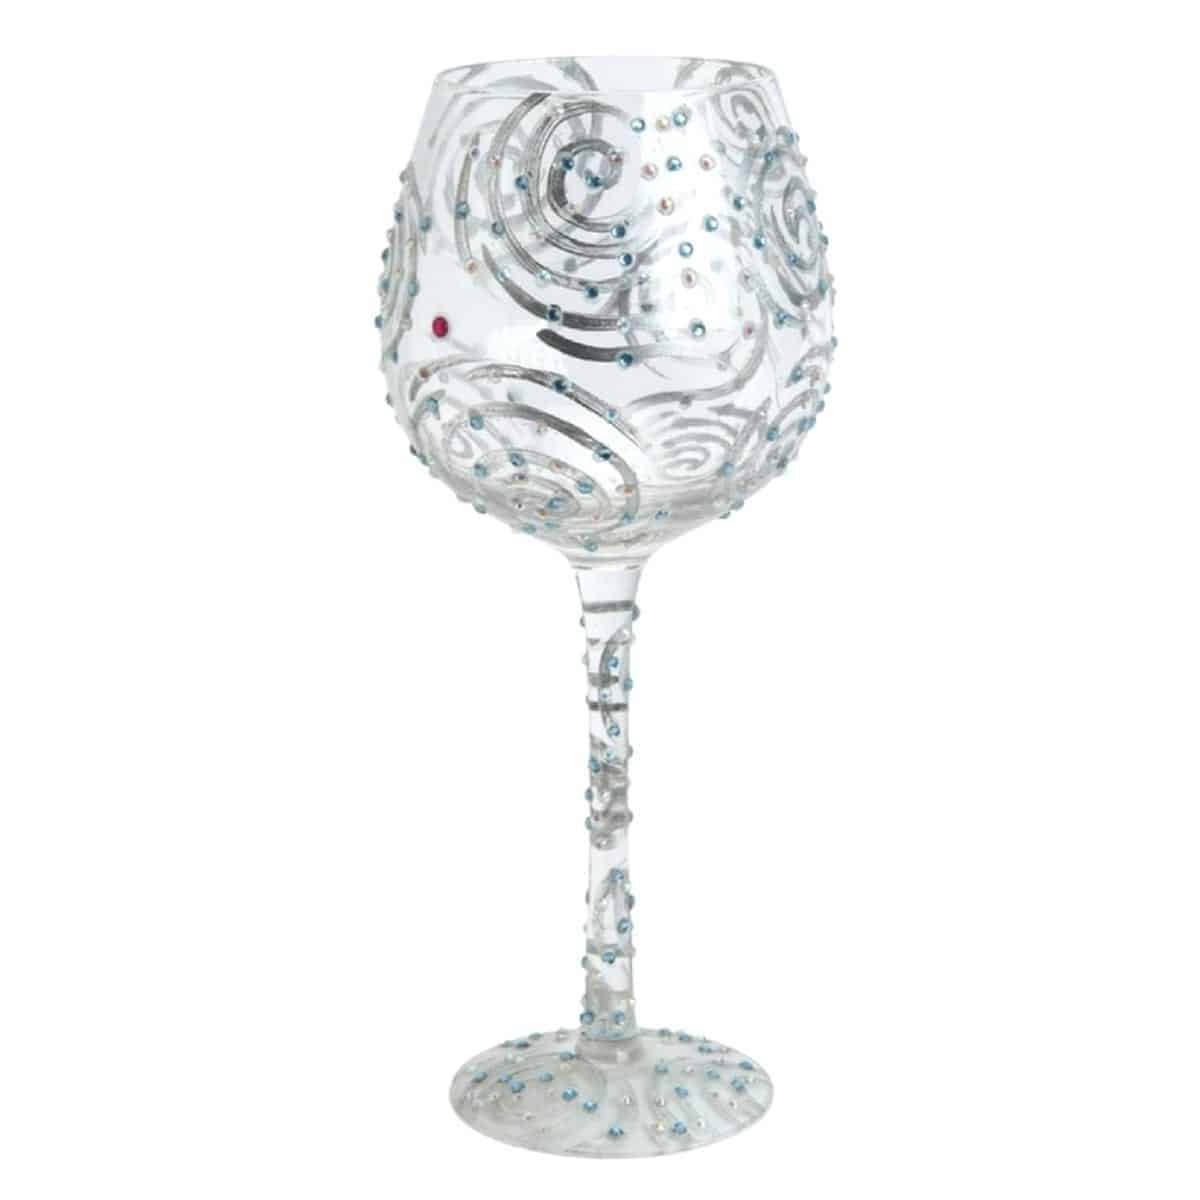 Lolita from enesco wine glass